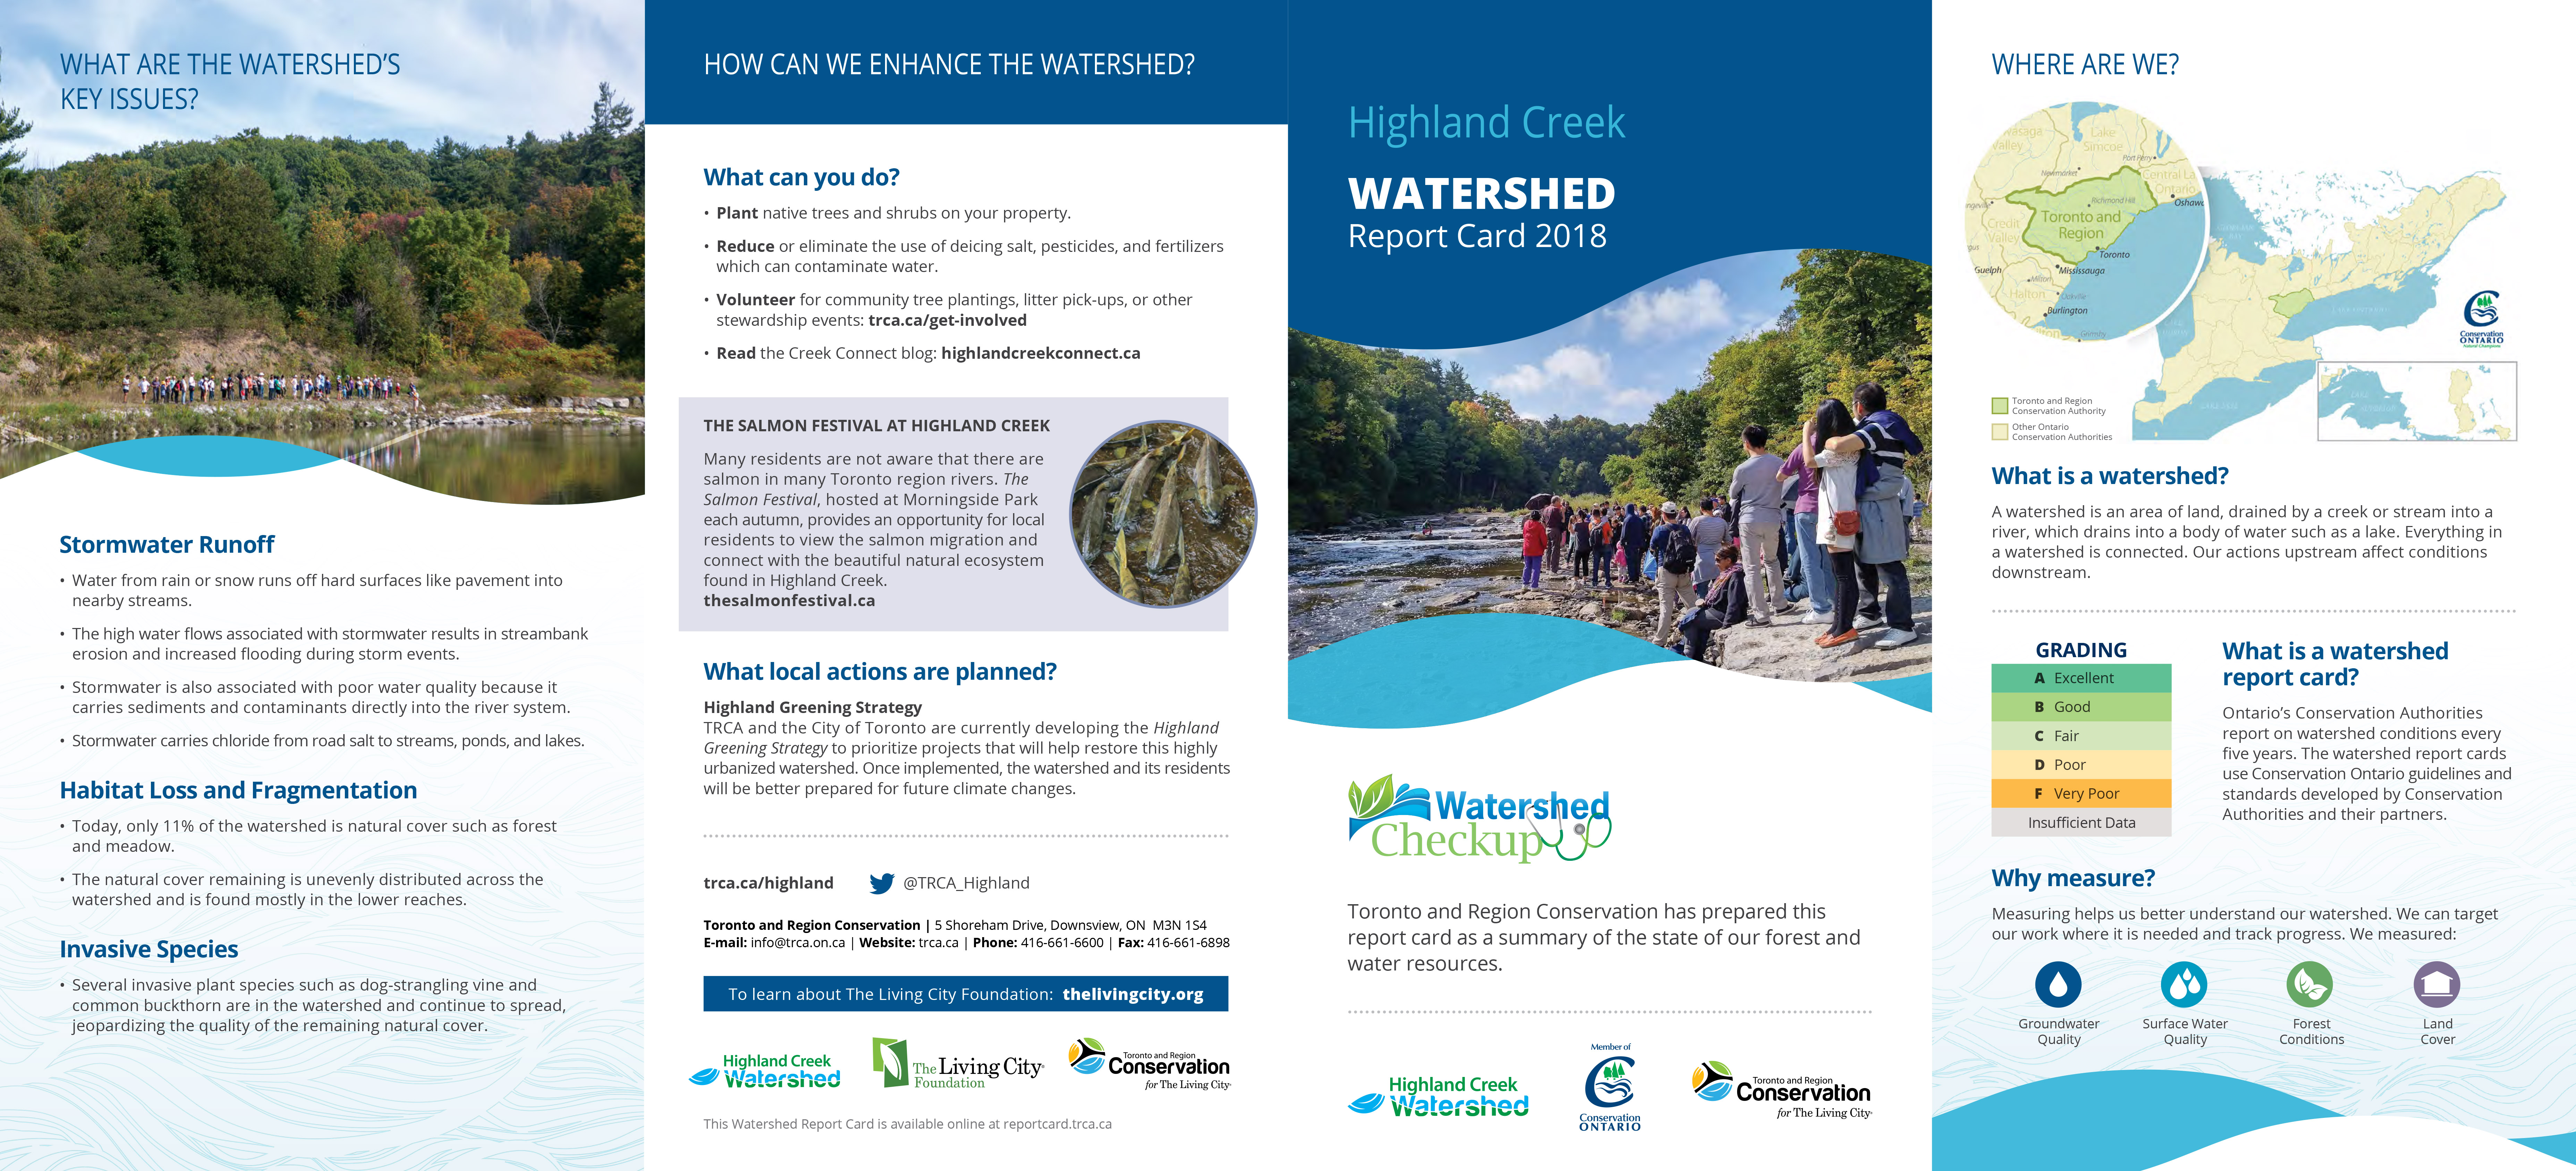 Highland Creek Watershed Report Card